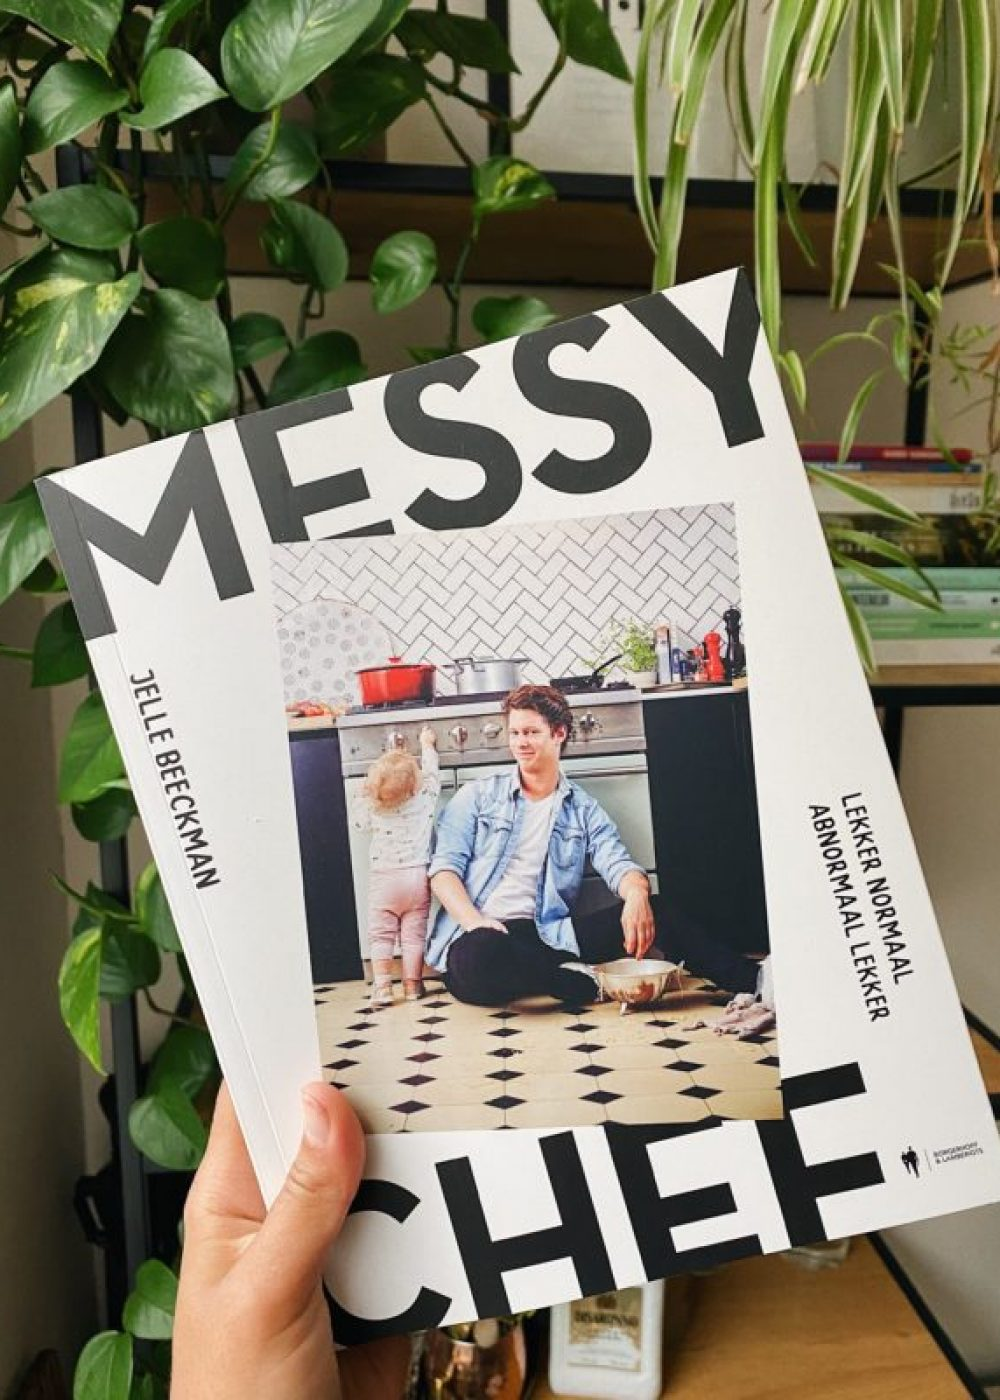 The Messy Chef – De Vlaamse Jamie Oliver?